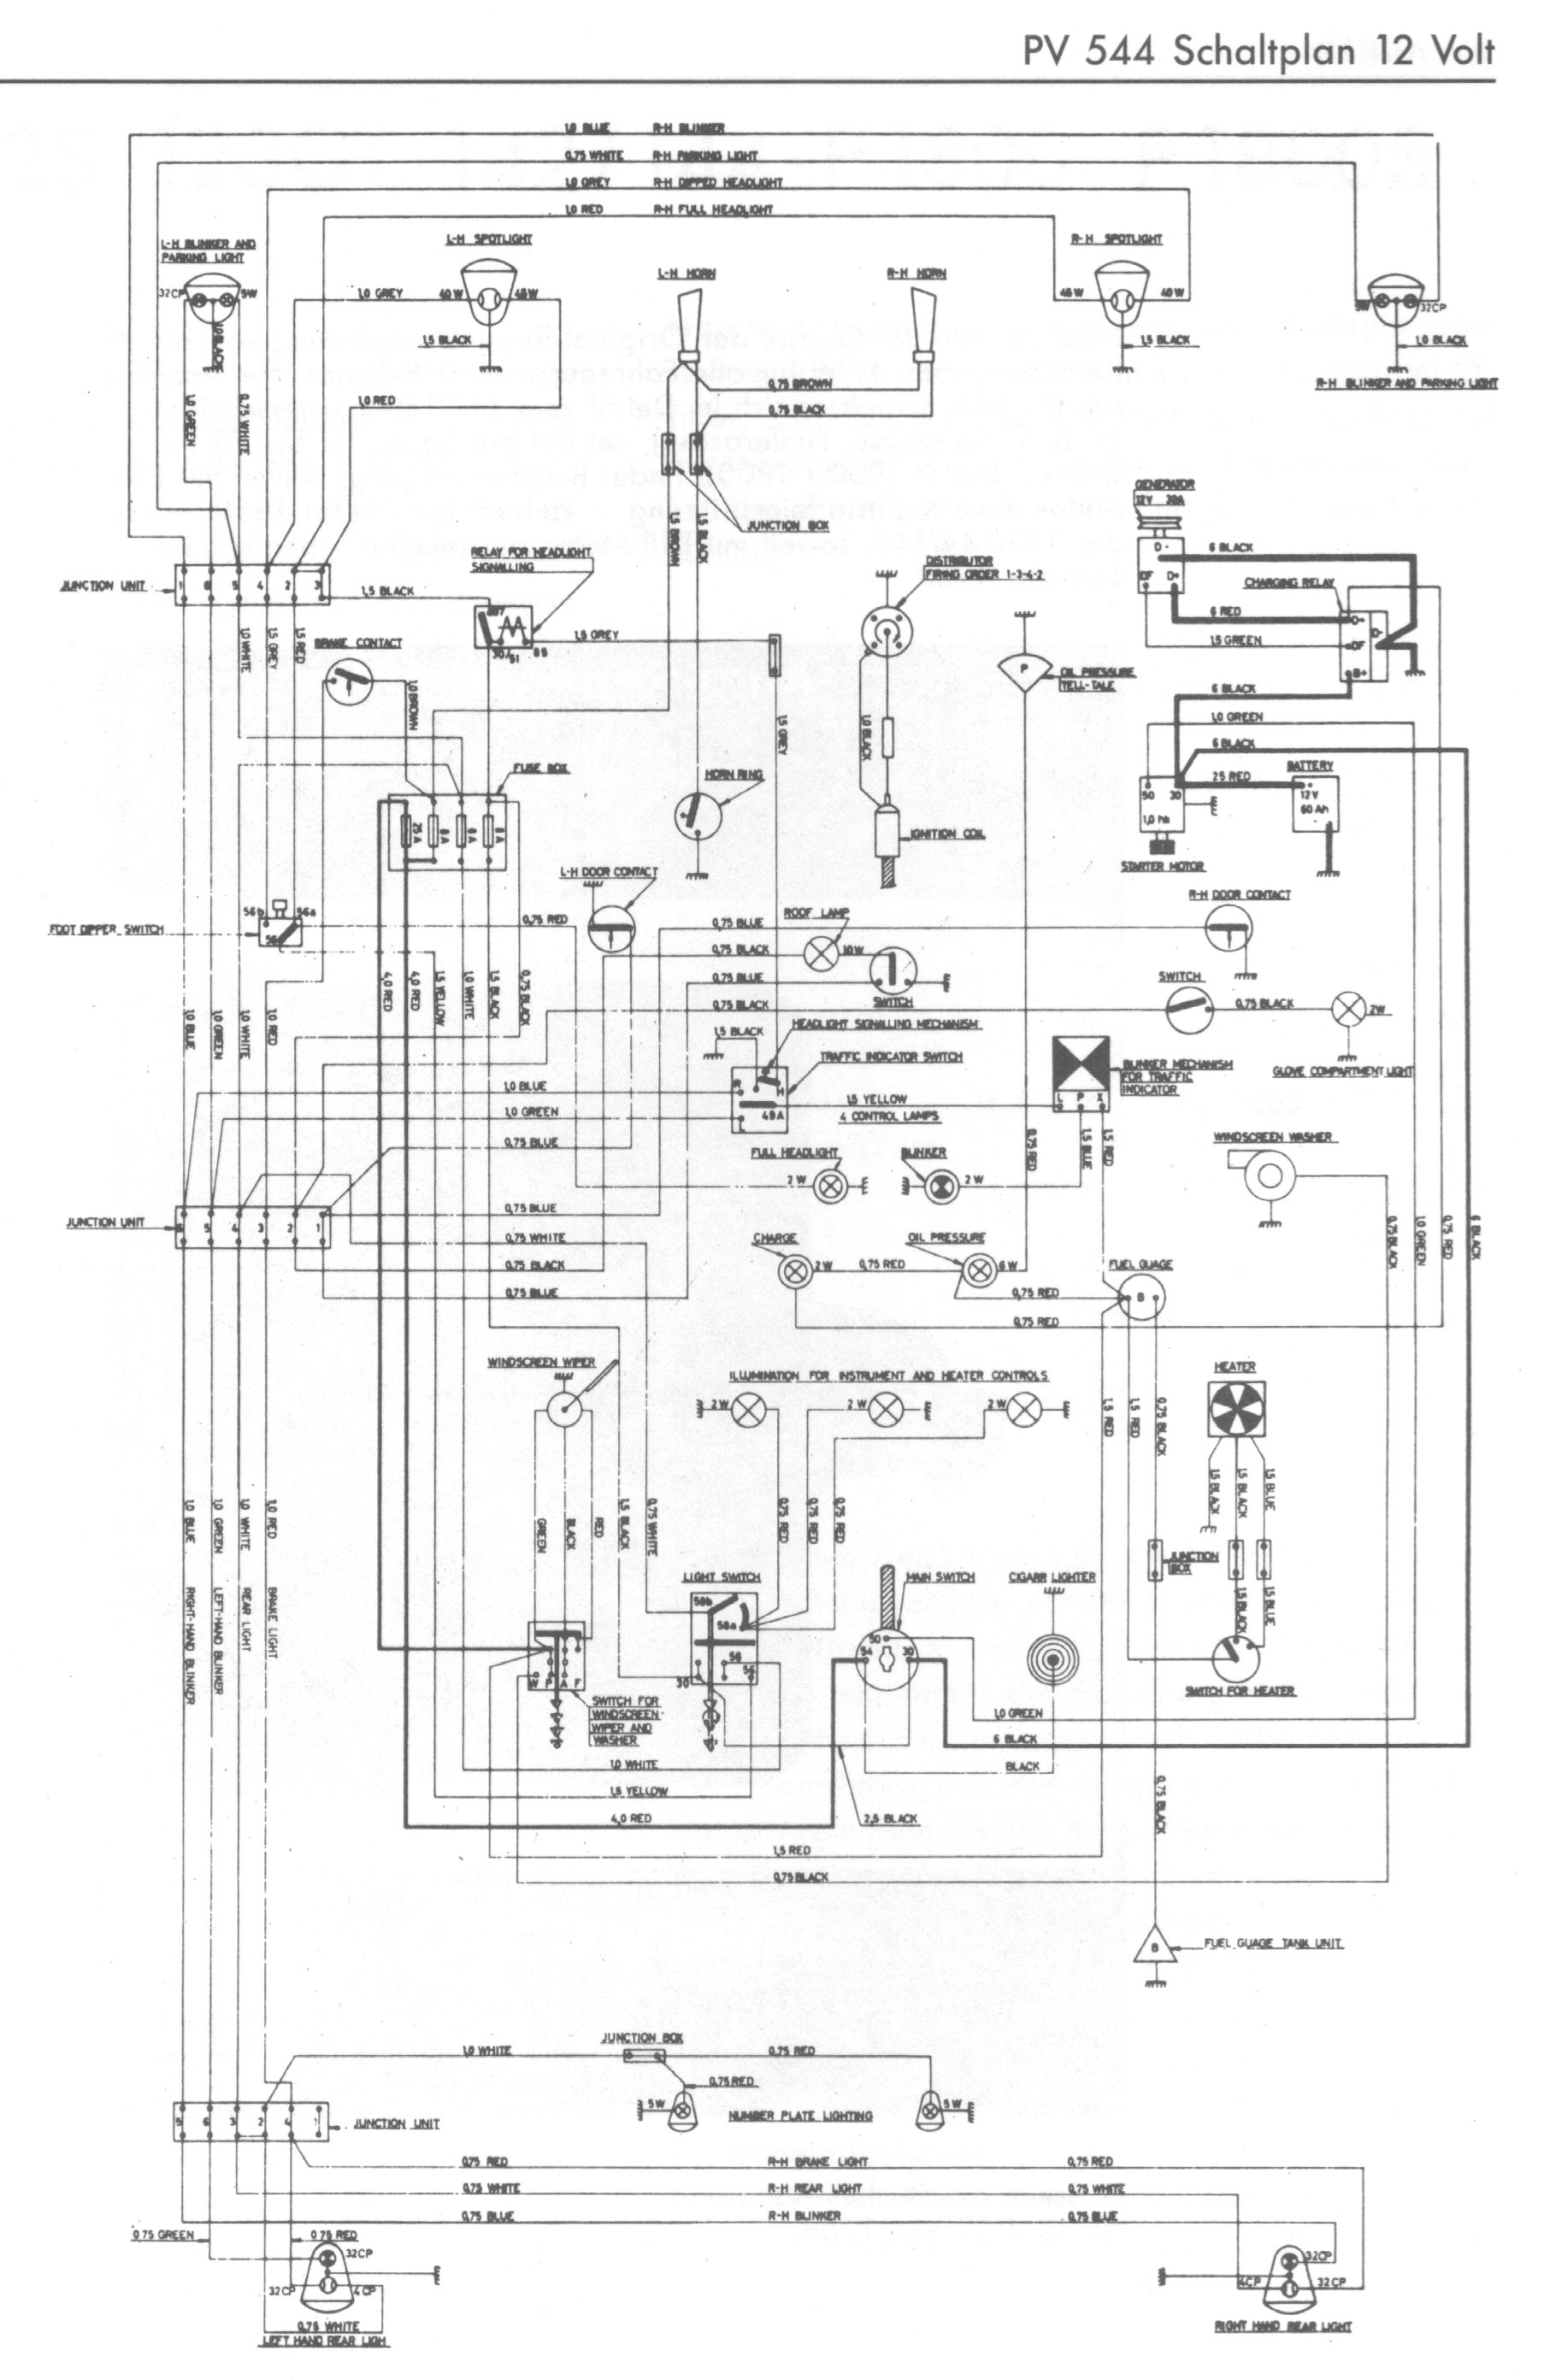 1993 Volvo 240 Wiring Diagram Great Design Of 1992 960 Radio Html Fuse